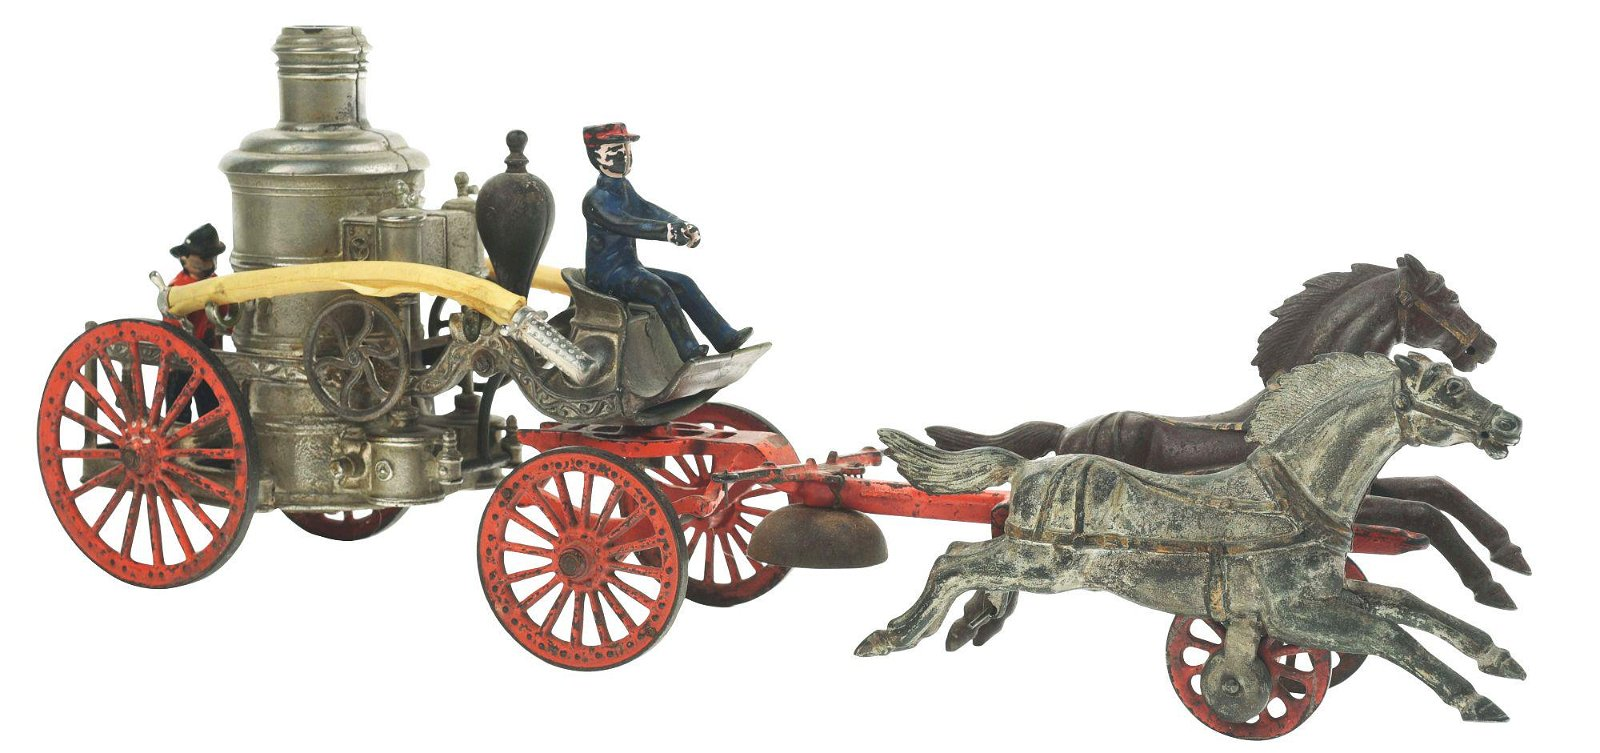 IDEAL TWO HORSE DRAWN CAST IRON PUMPER.